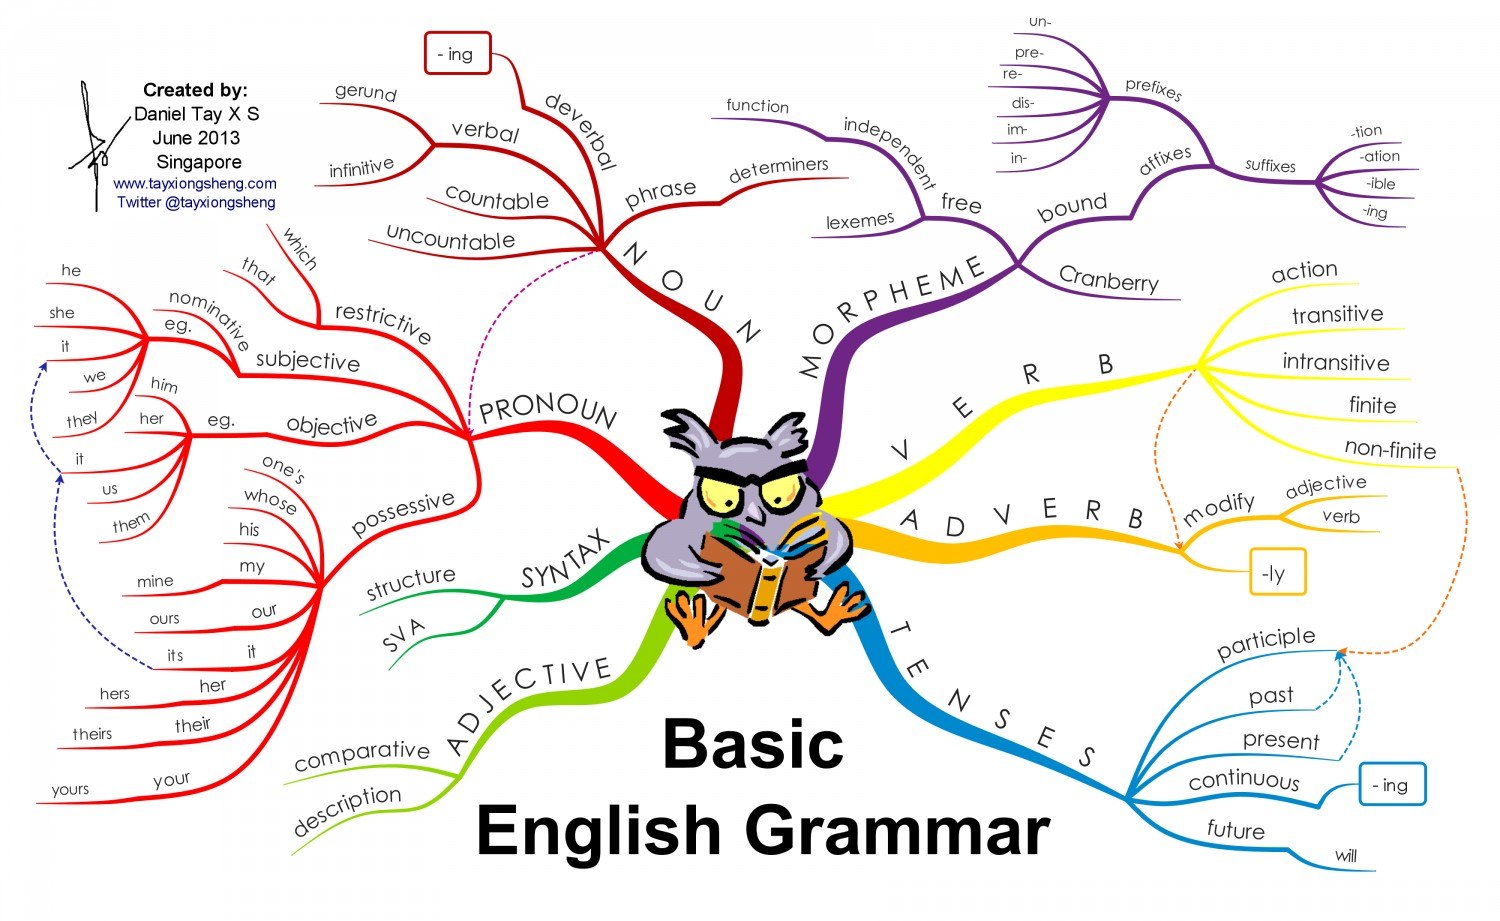 Download English Grammar Wallpaper Gallery